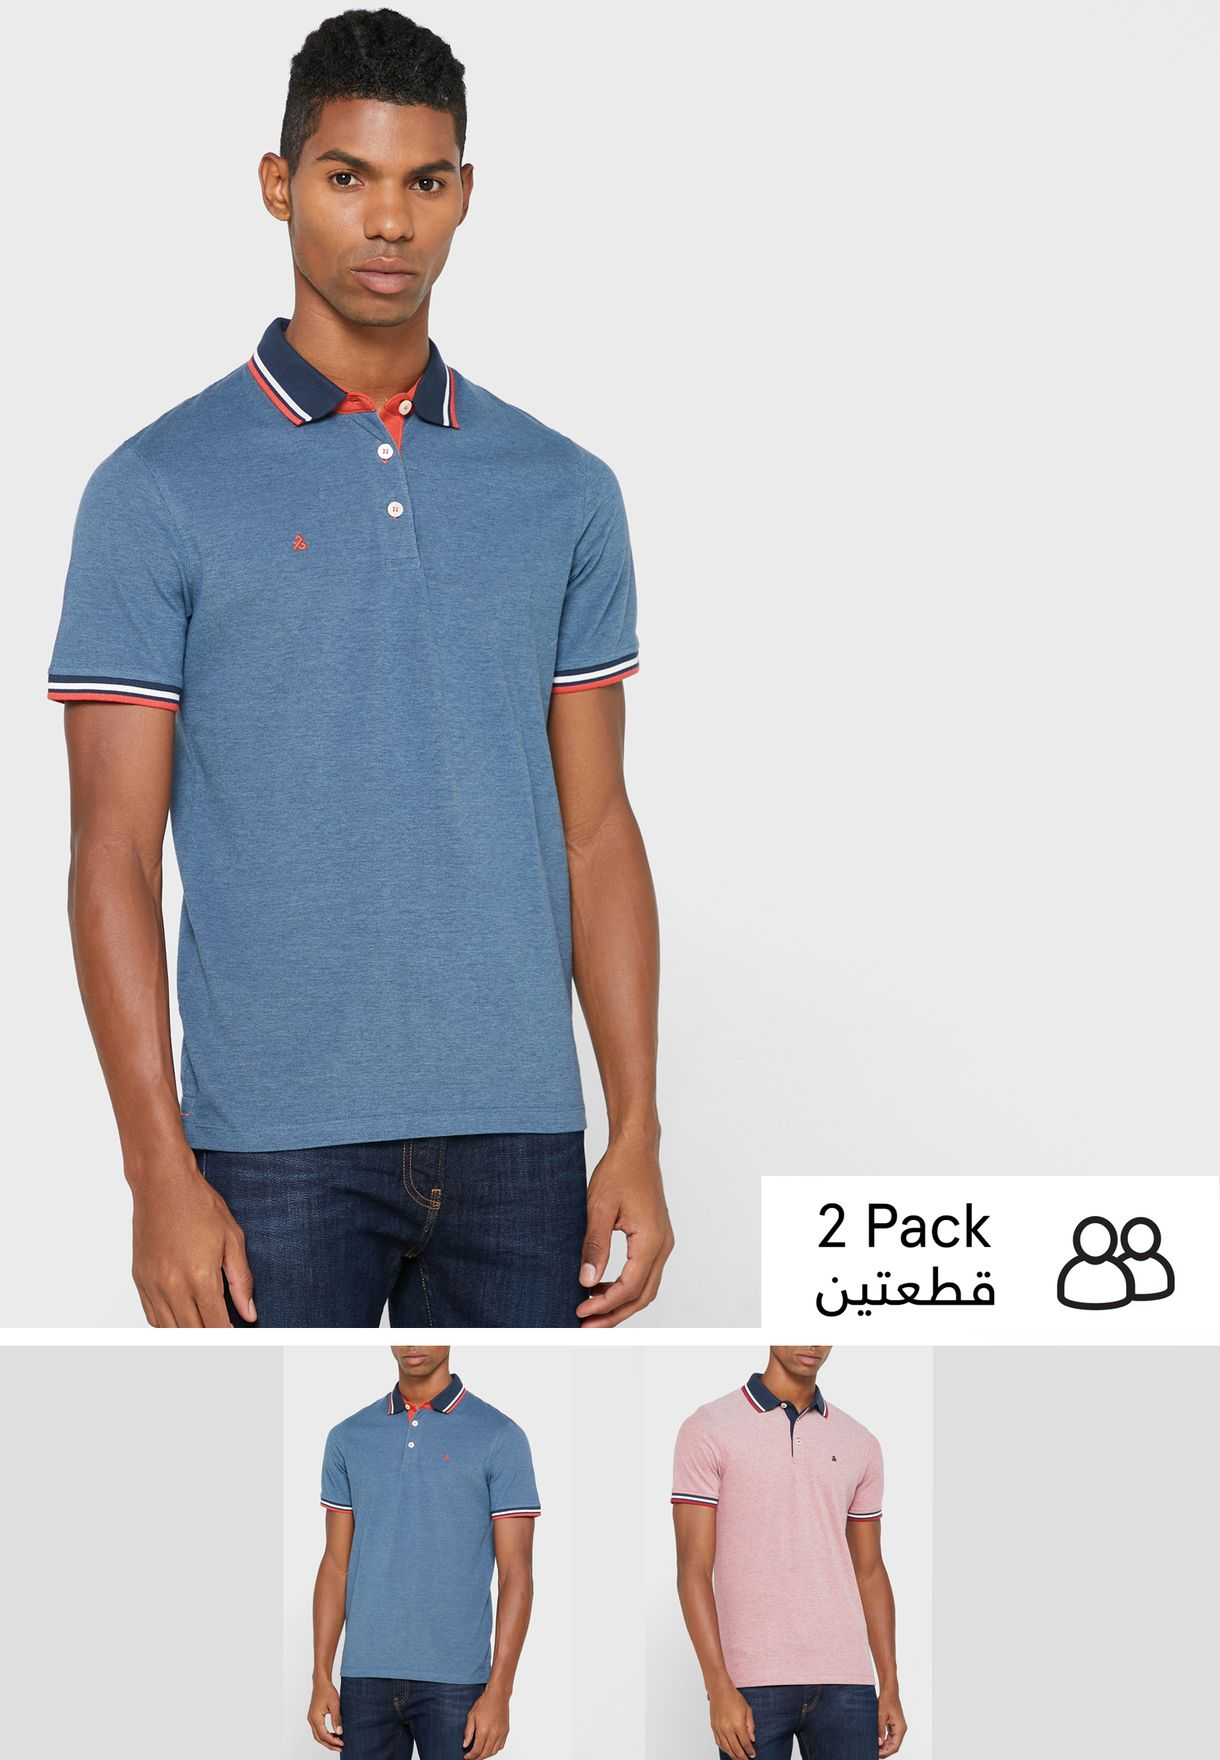 2 Pack Essential Polo